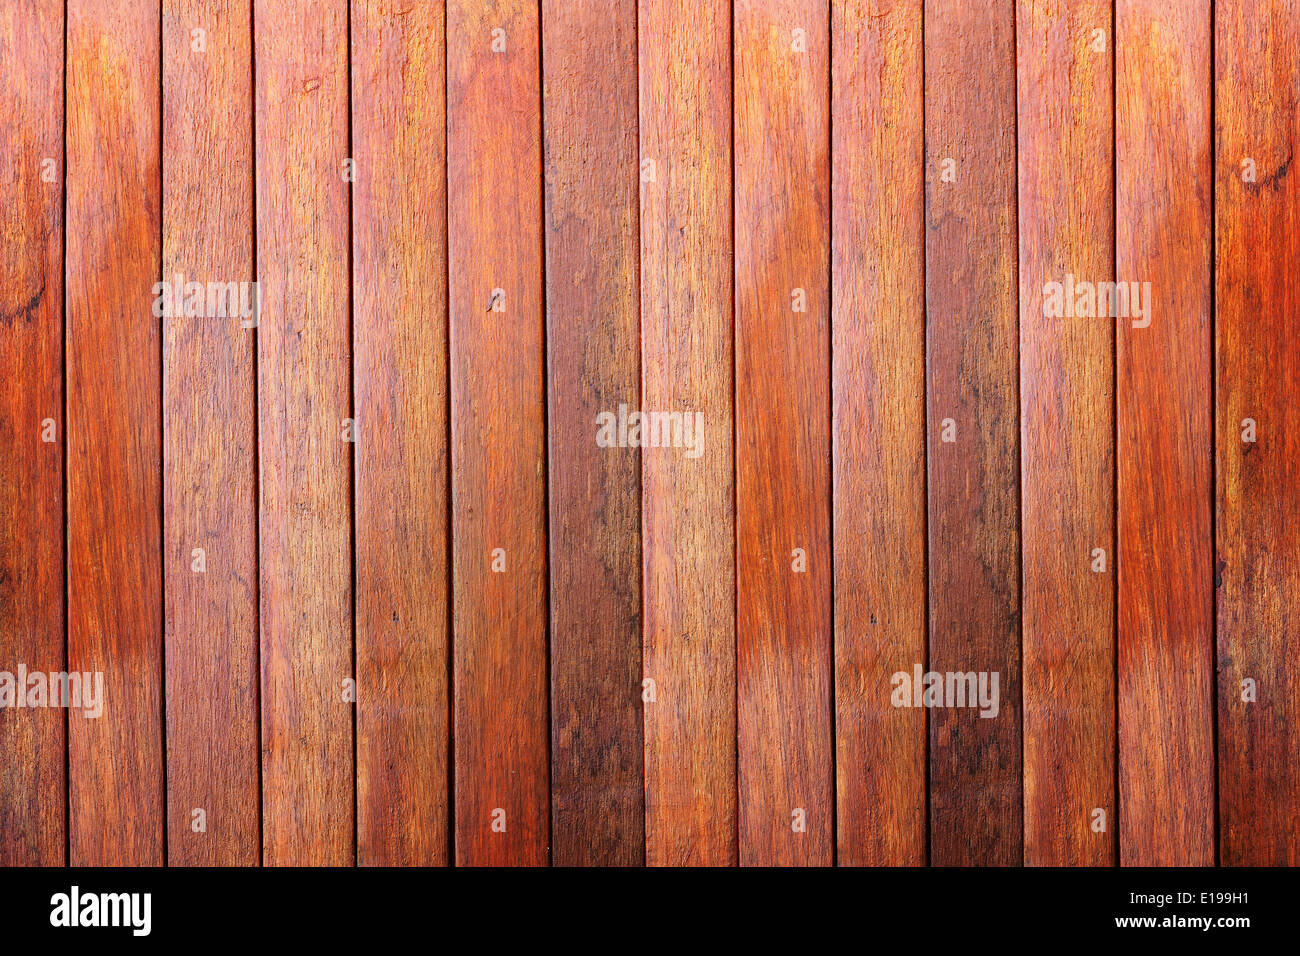 Wooden wall background made with vertical planks of hardwood Stock Photo